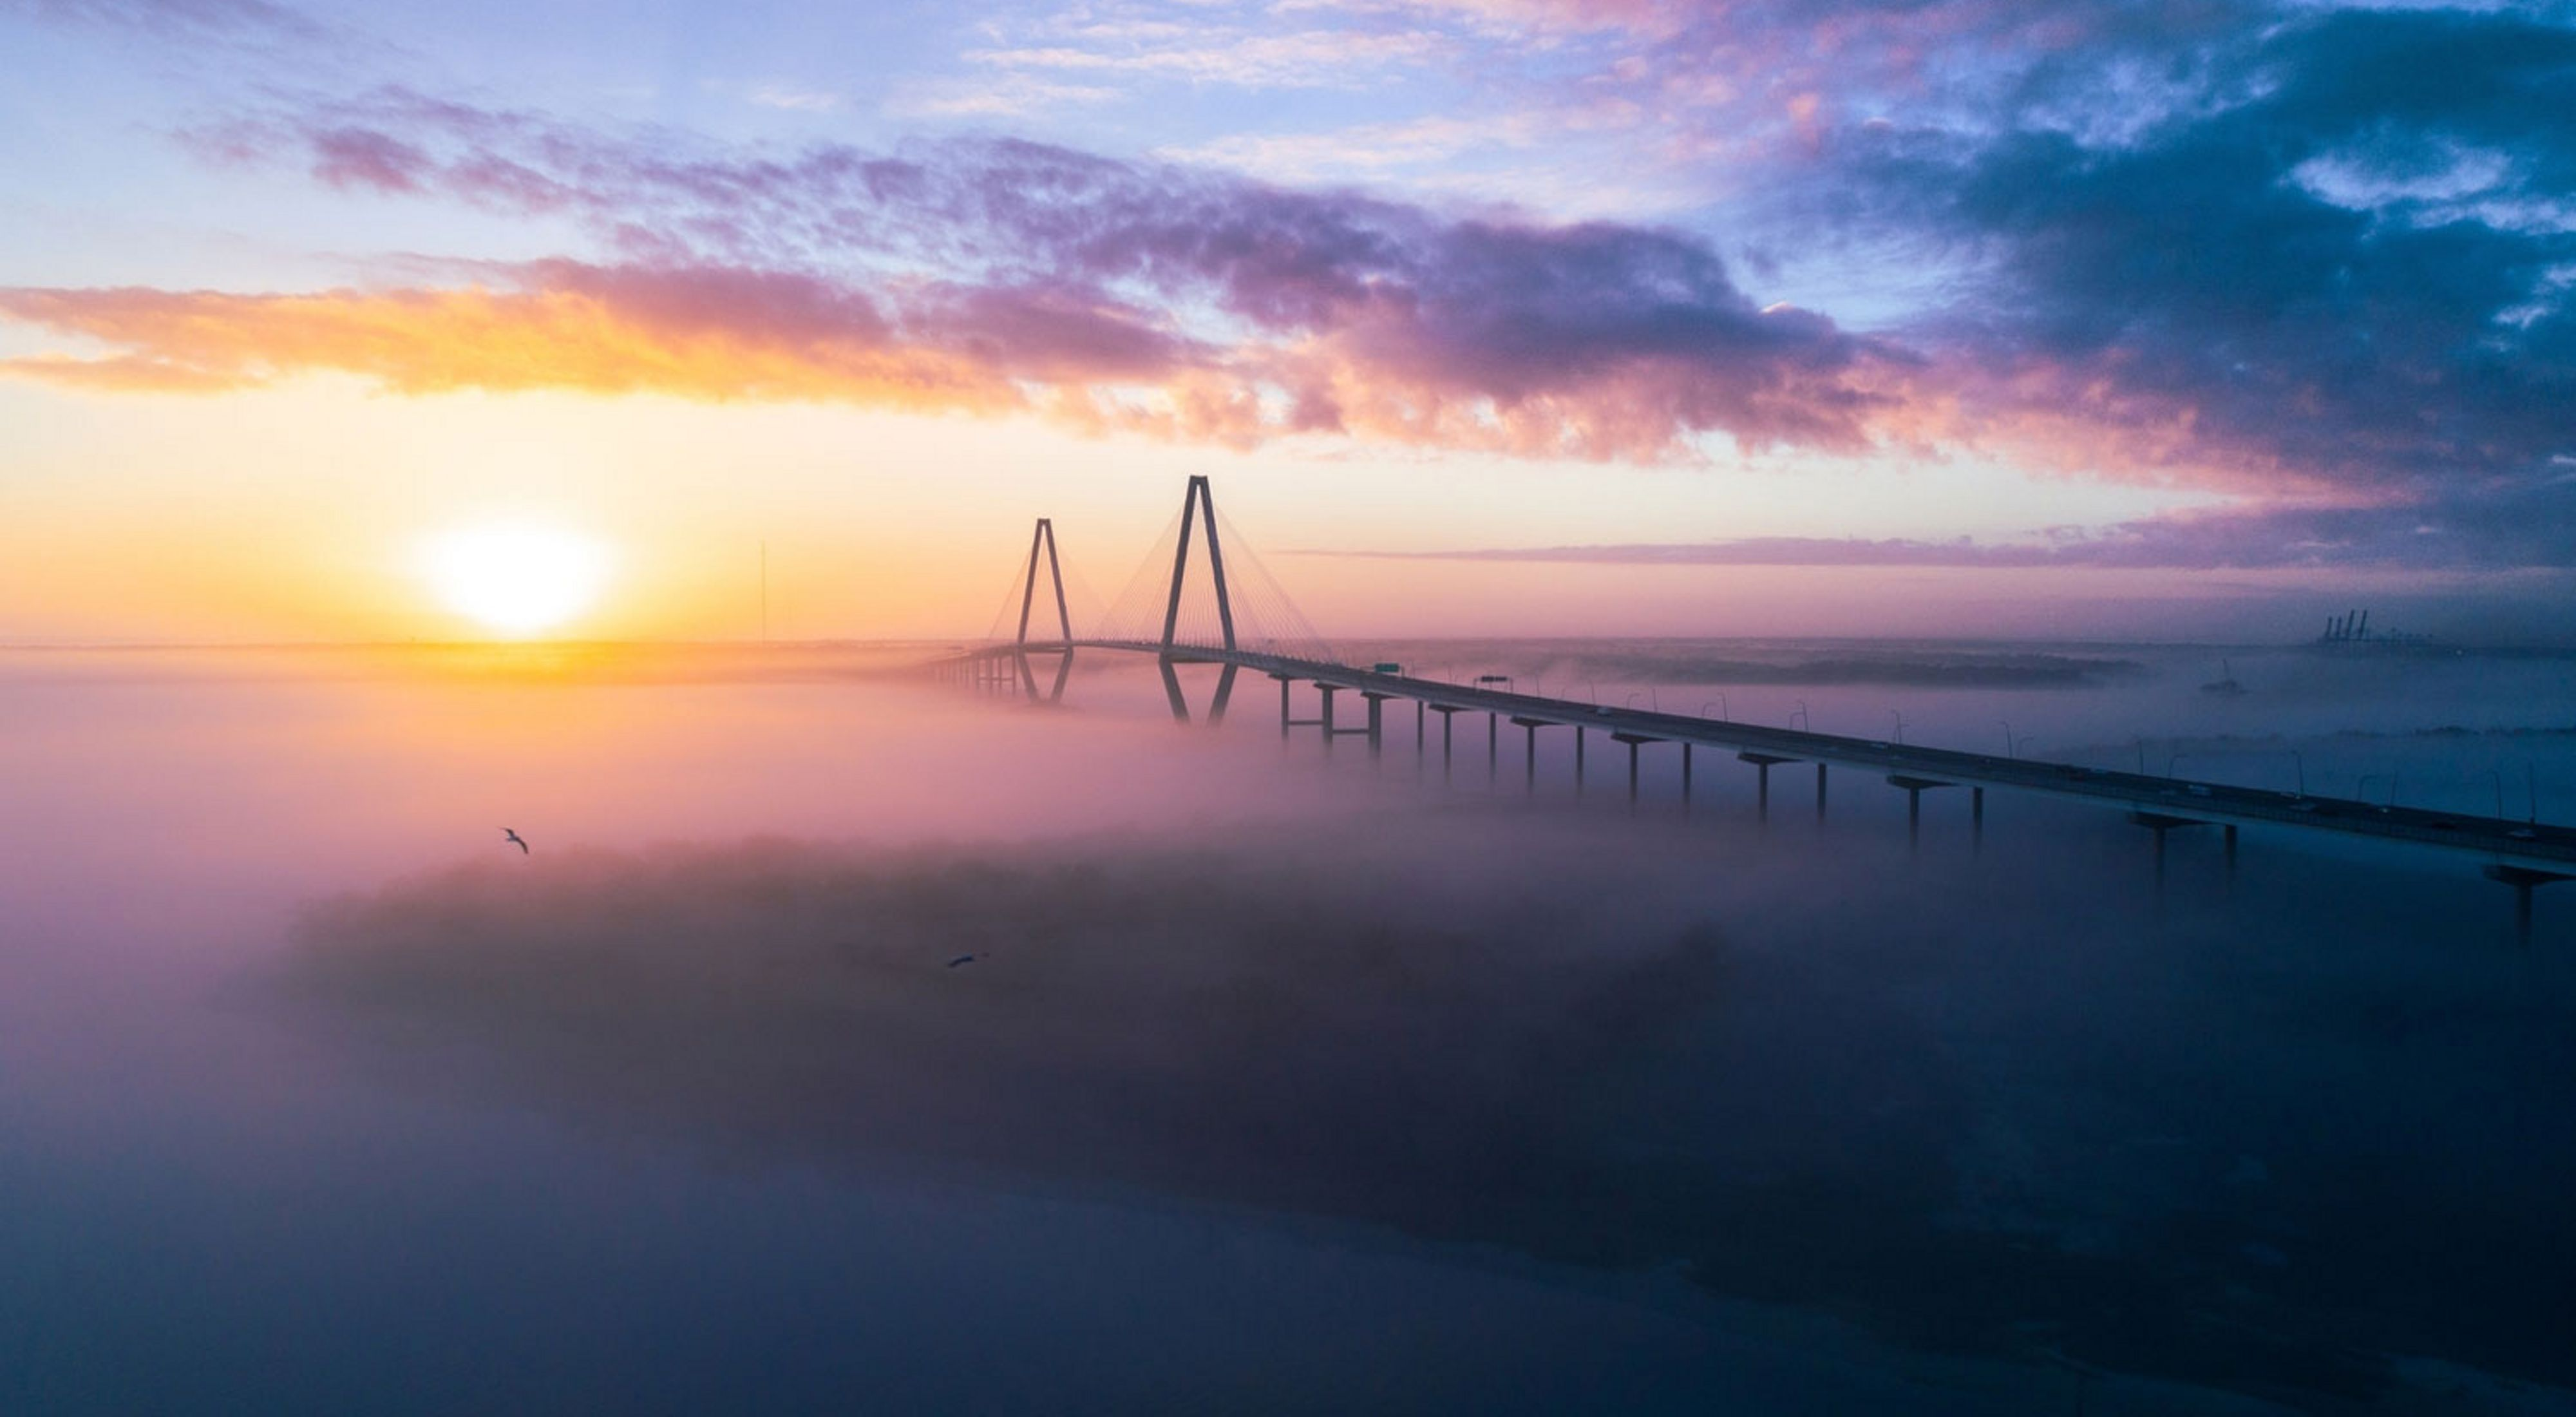 Sea fog covered the water below the Ravenel bridge during a chilly sunrise in Charleston, SC in February 2018.